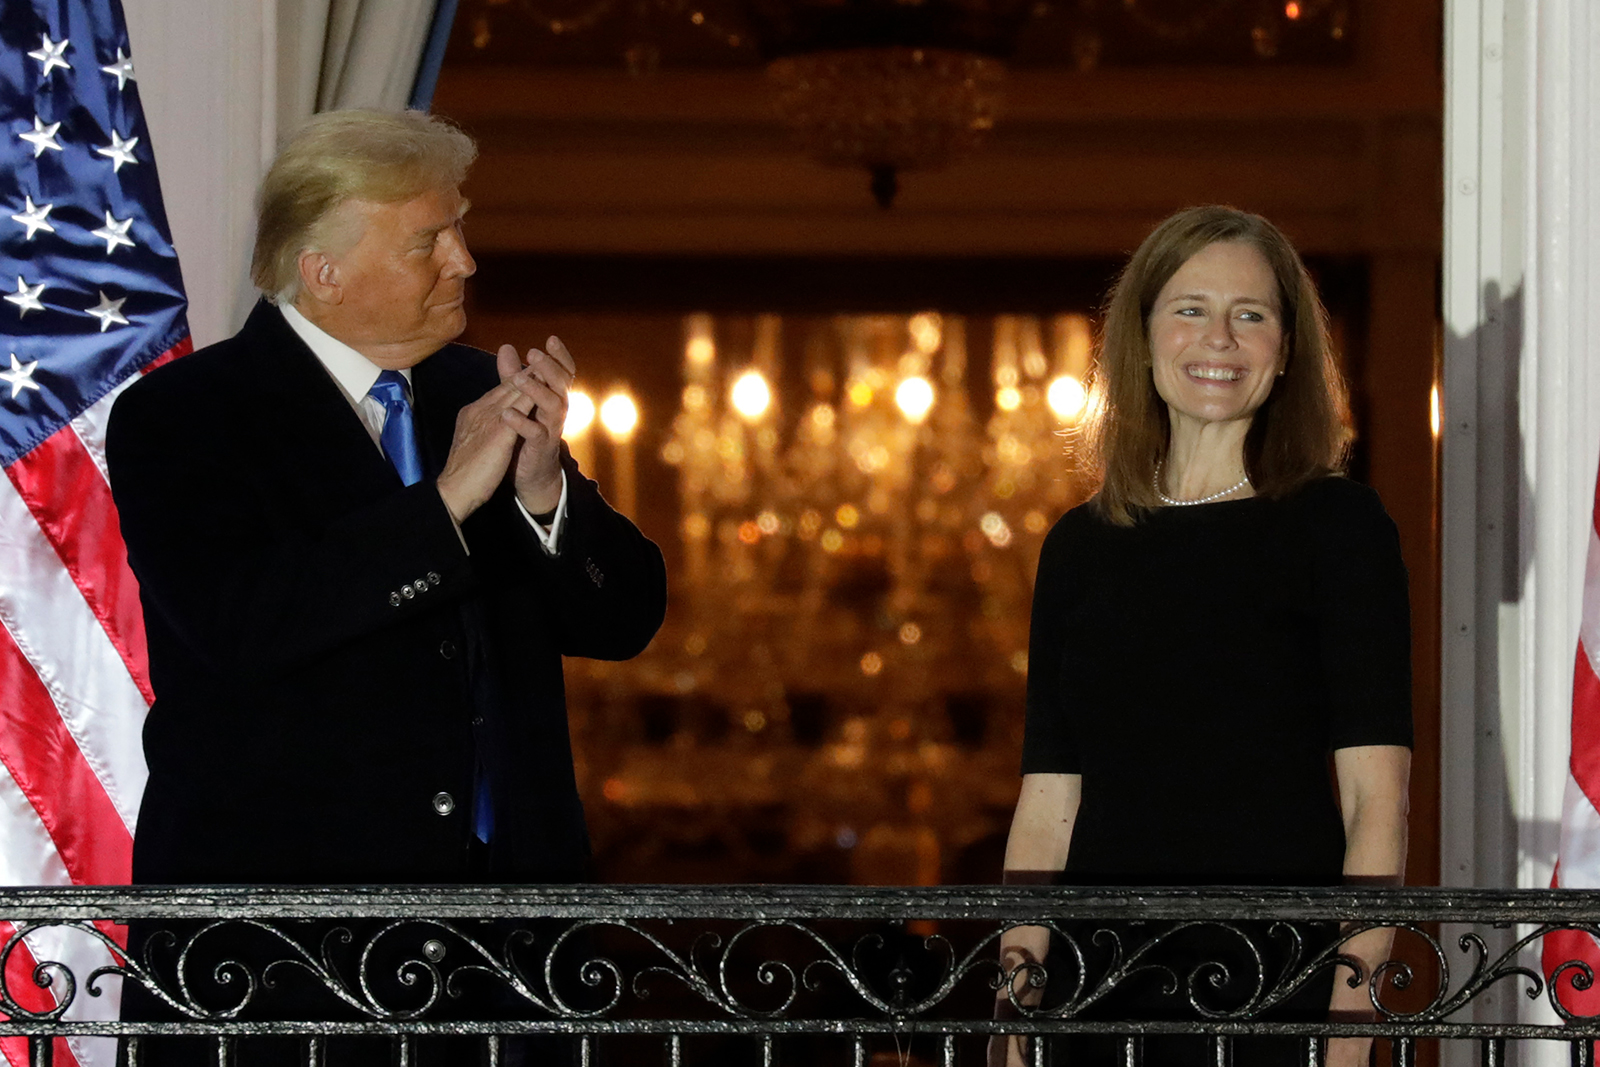 President Donald Trump applauds new Supreme Court Associate Justice Judge Amy Coney Barrett after she was sworn-in during a ceremony on the South Lawn of the White House in Washington, DC, on October 26.